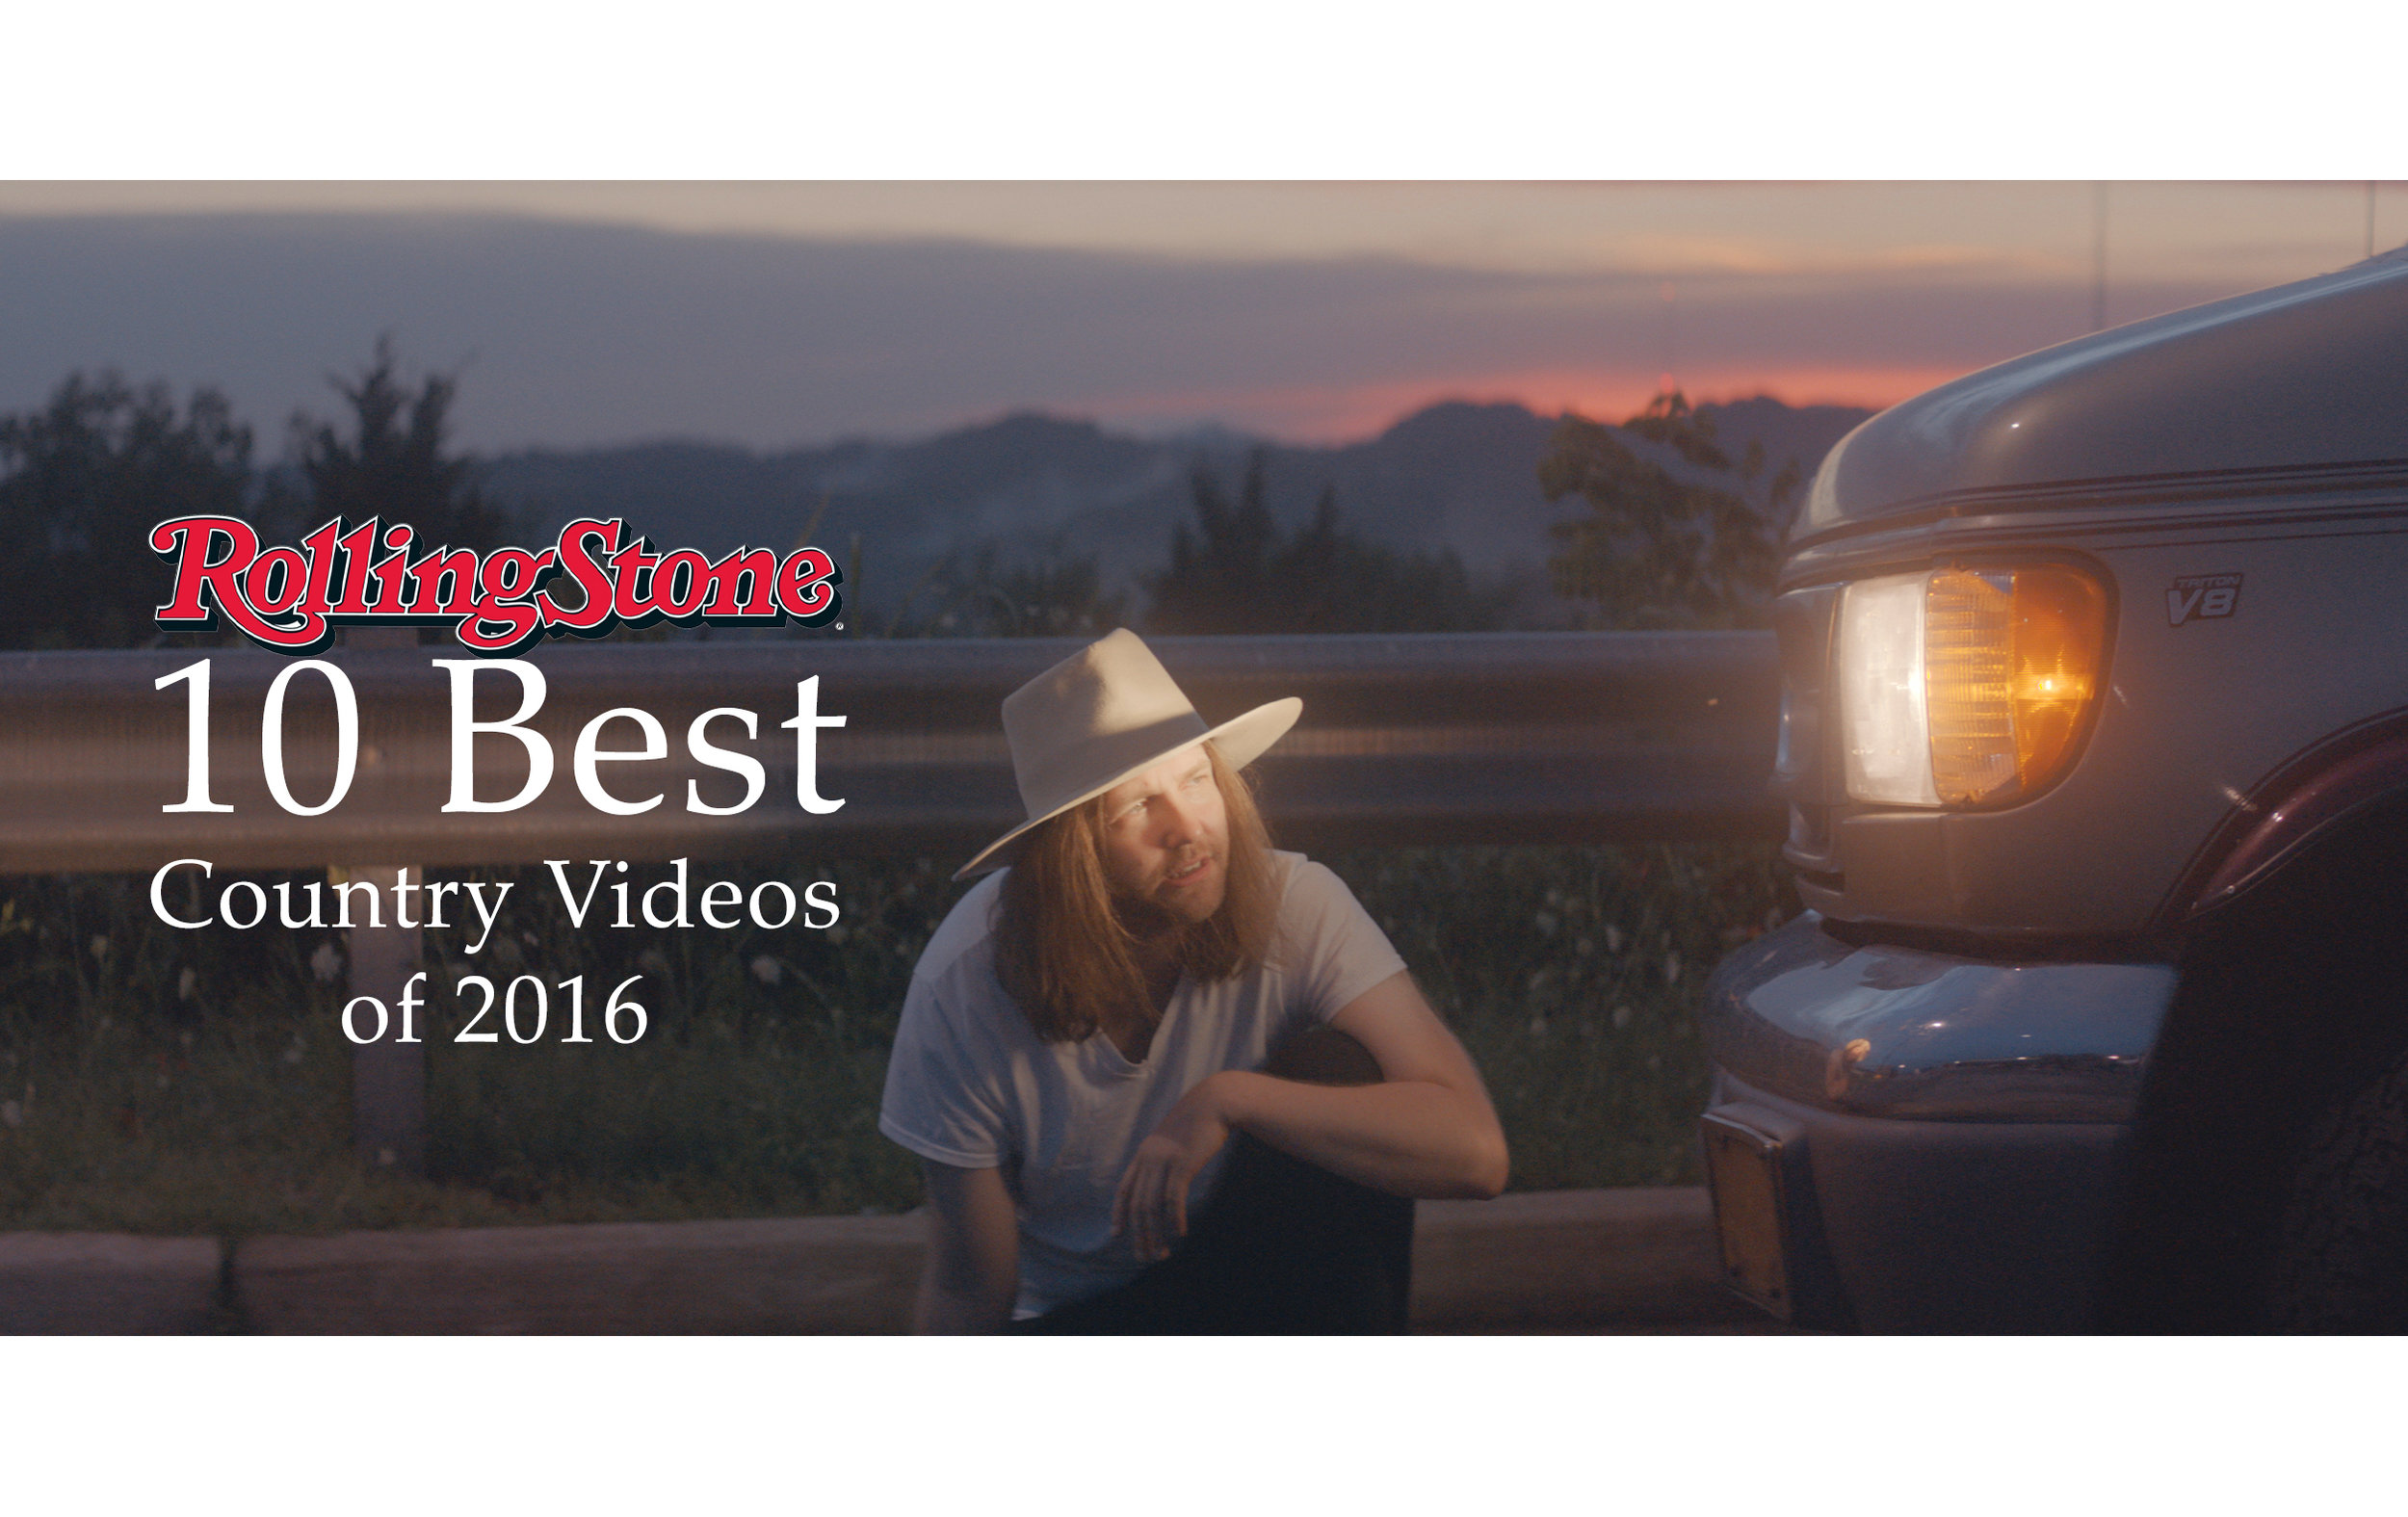 Rolling Stone's 10 Best Country Videos of 2016 - ALT's 'Little Movies' makes the list.